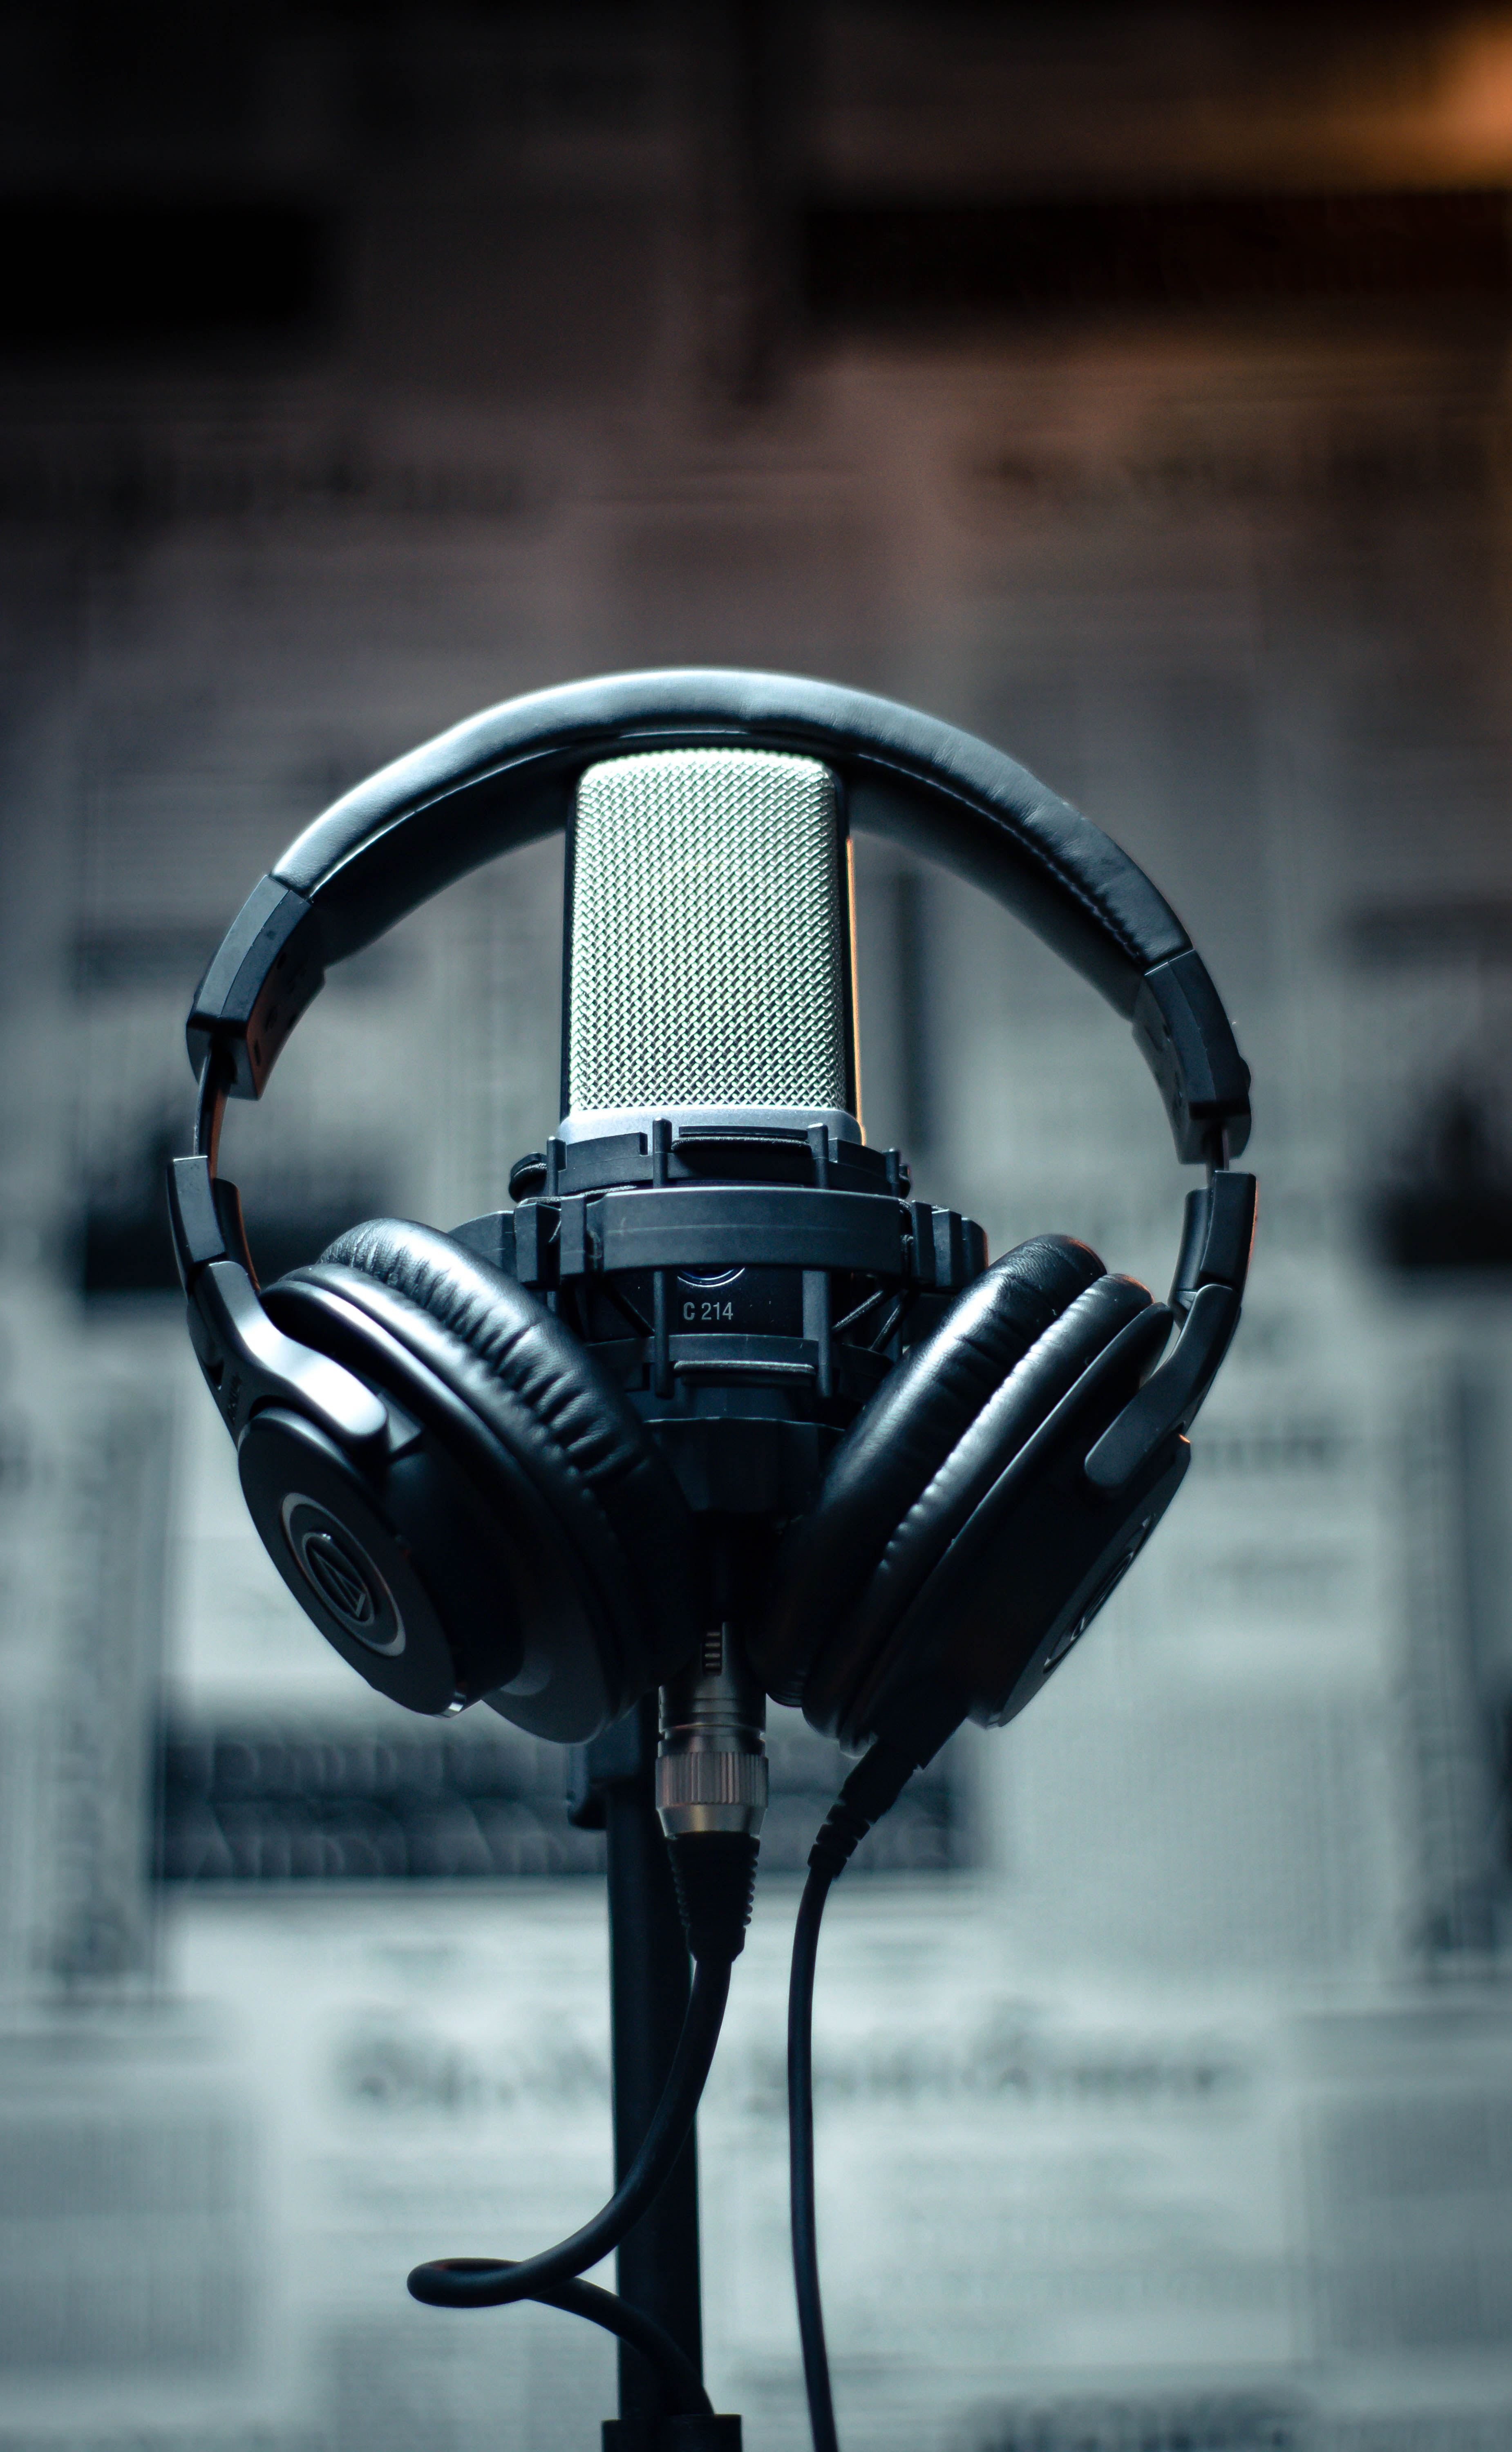 Professional voice over service (Guaranteed Satisfaction) ($5 per 100 words)